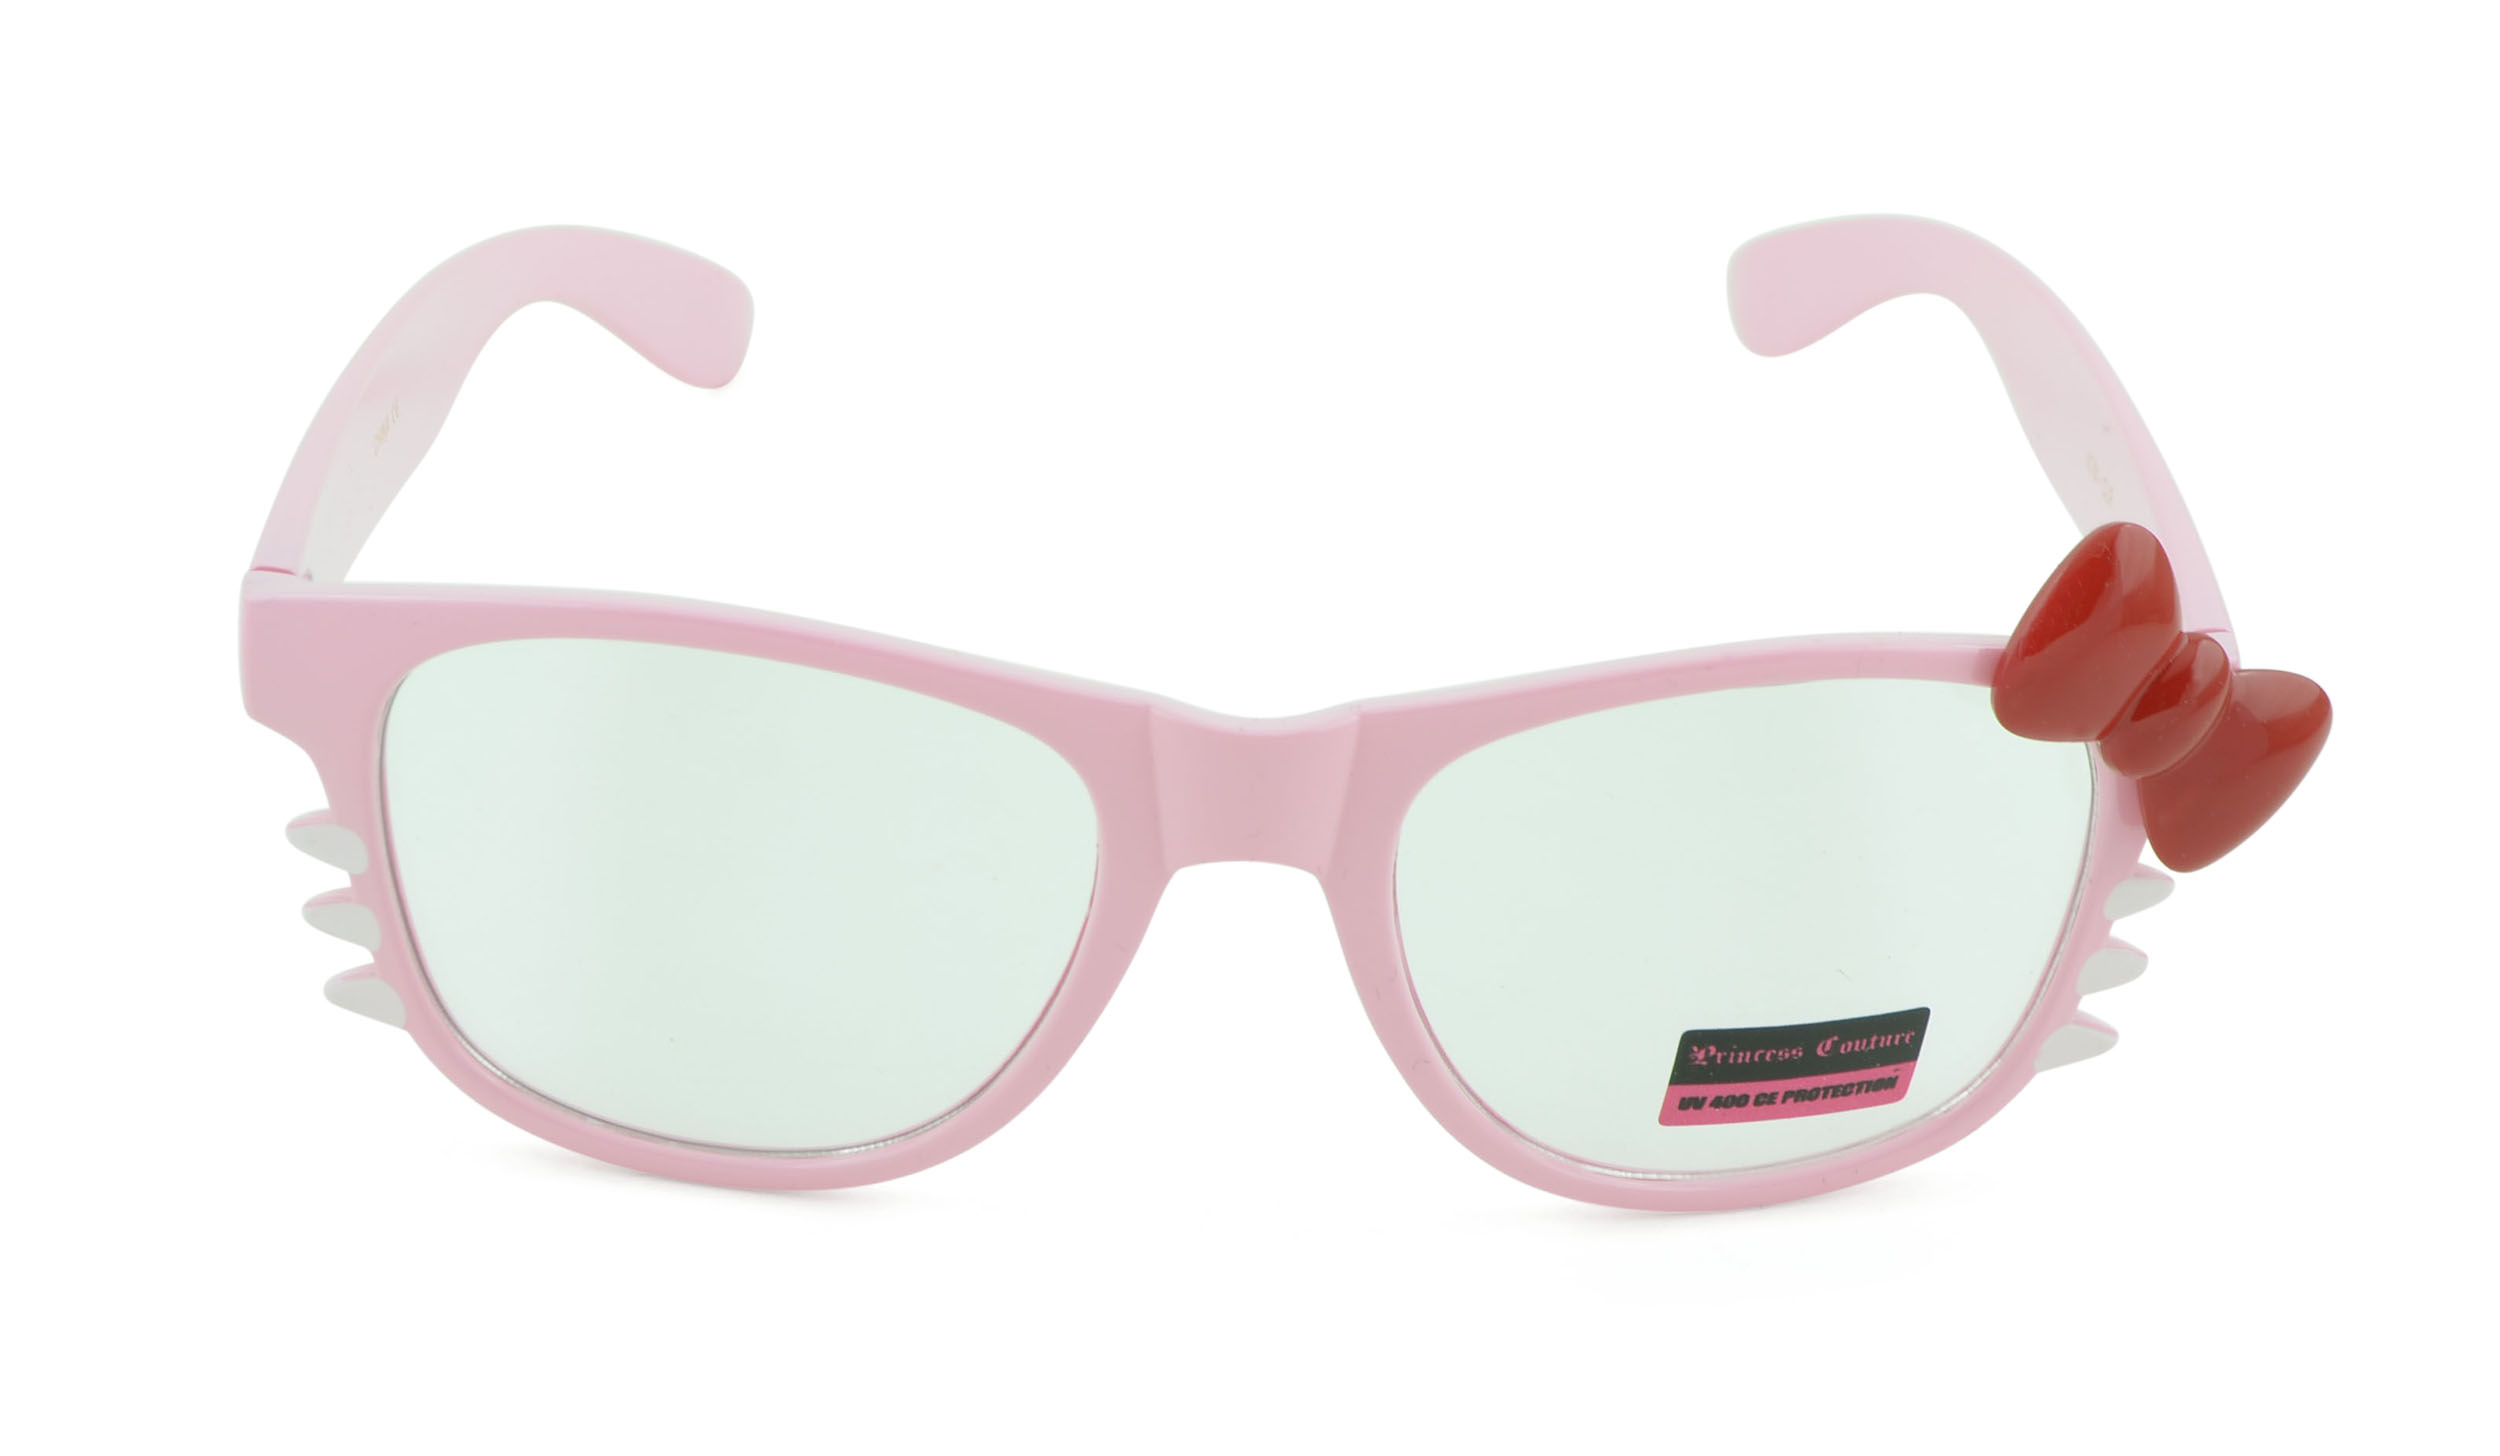 Belle Donne-Womens Kitty Style Sunglasses | Whiskers and Bow Accent-Clear Pink